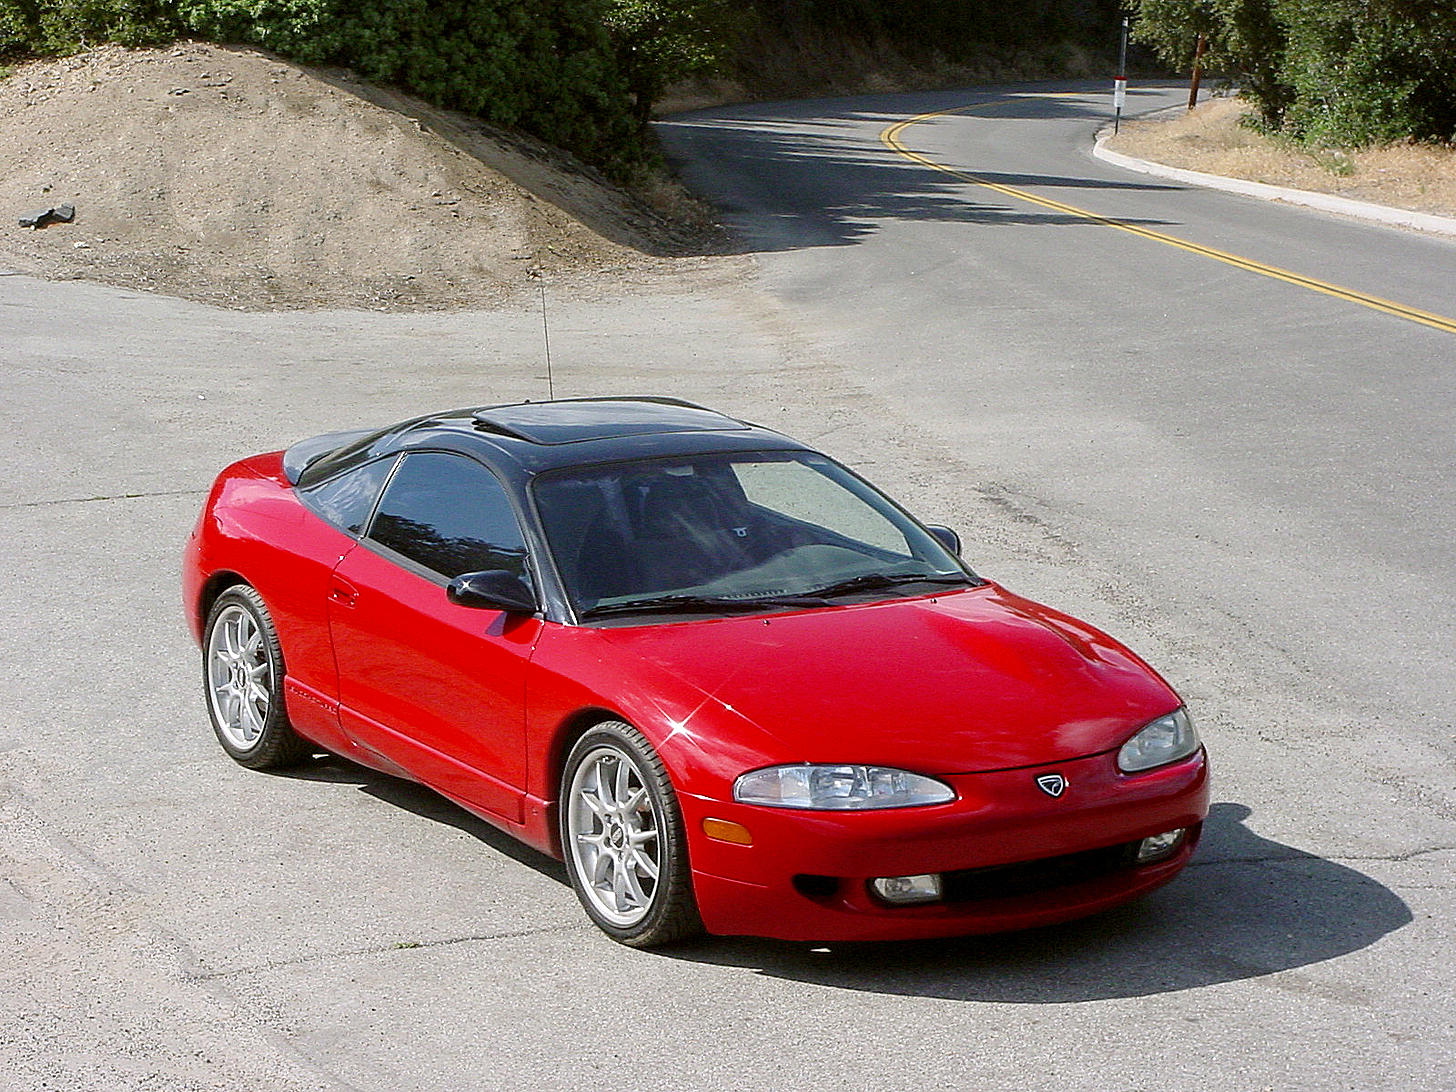 Eagle Talon #10